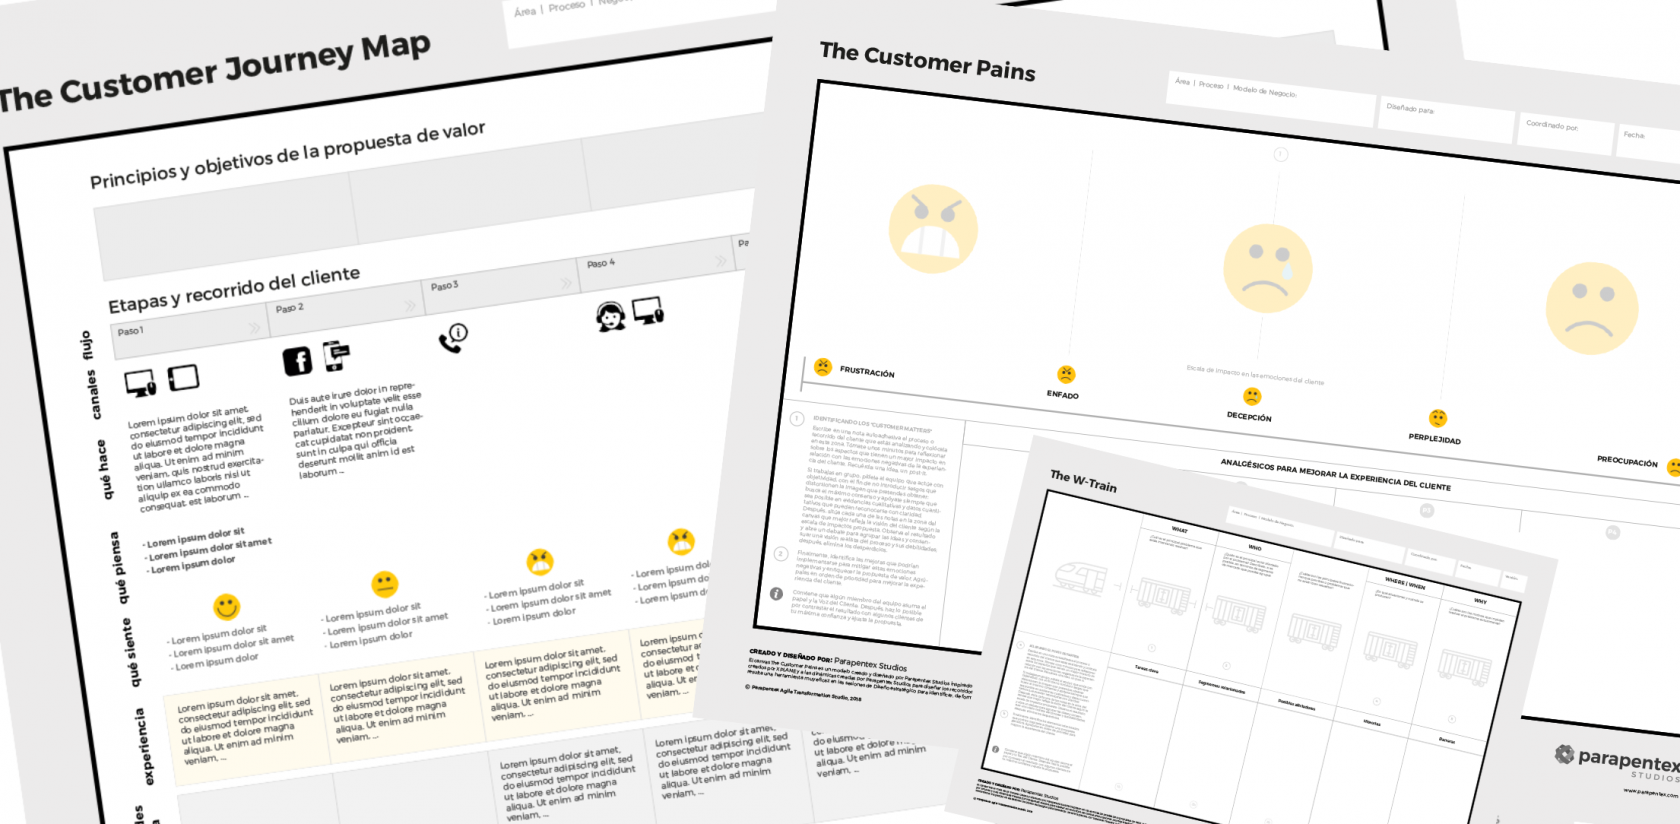 The Customer Journey Mapping